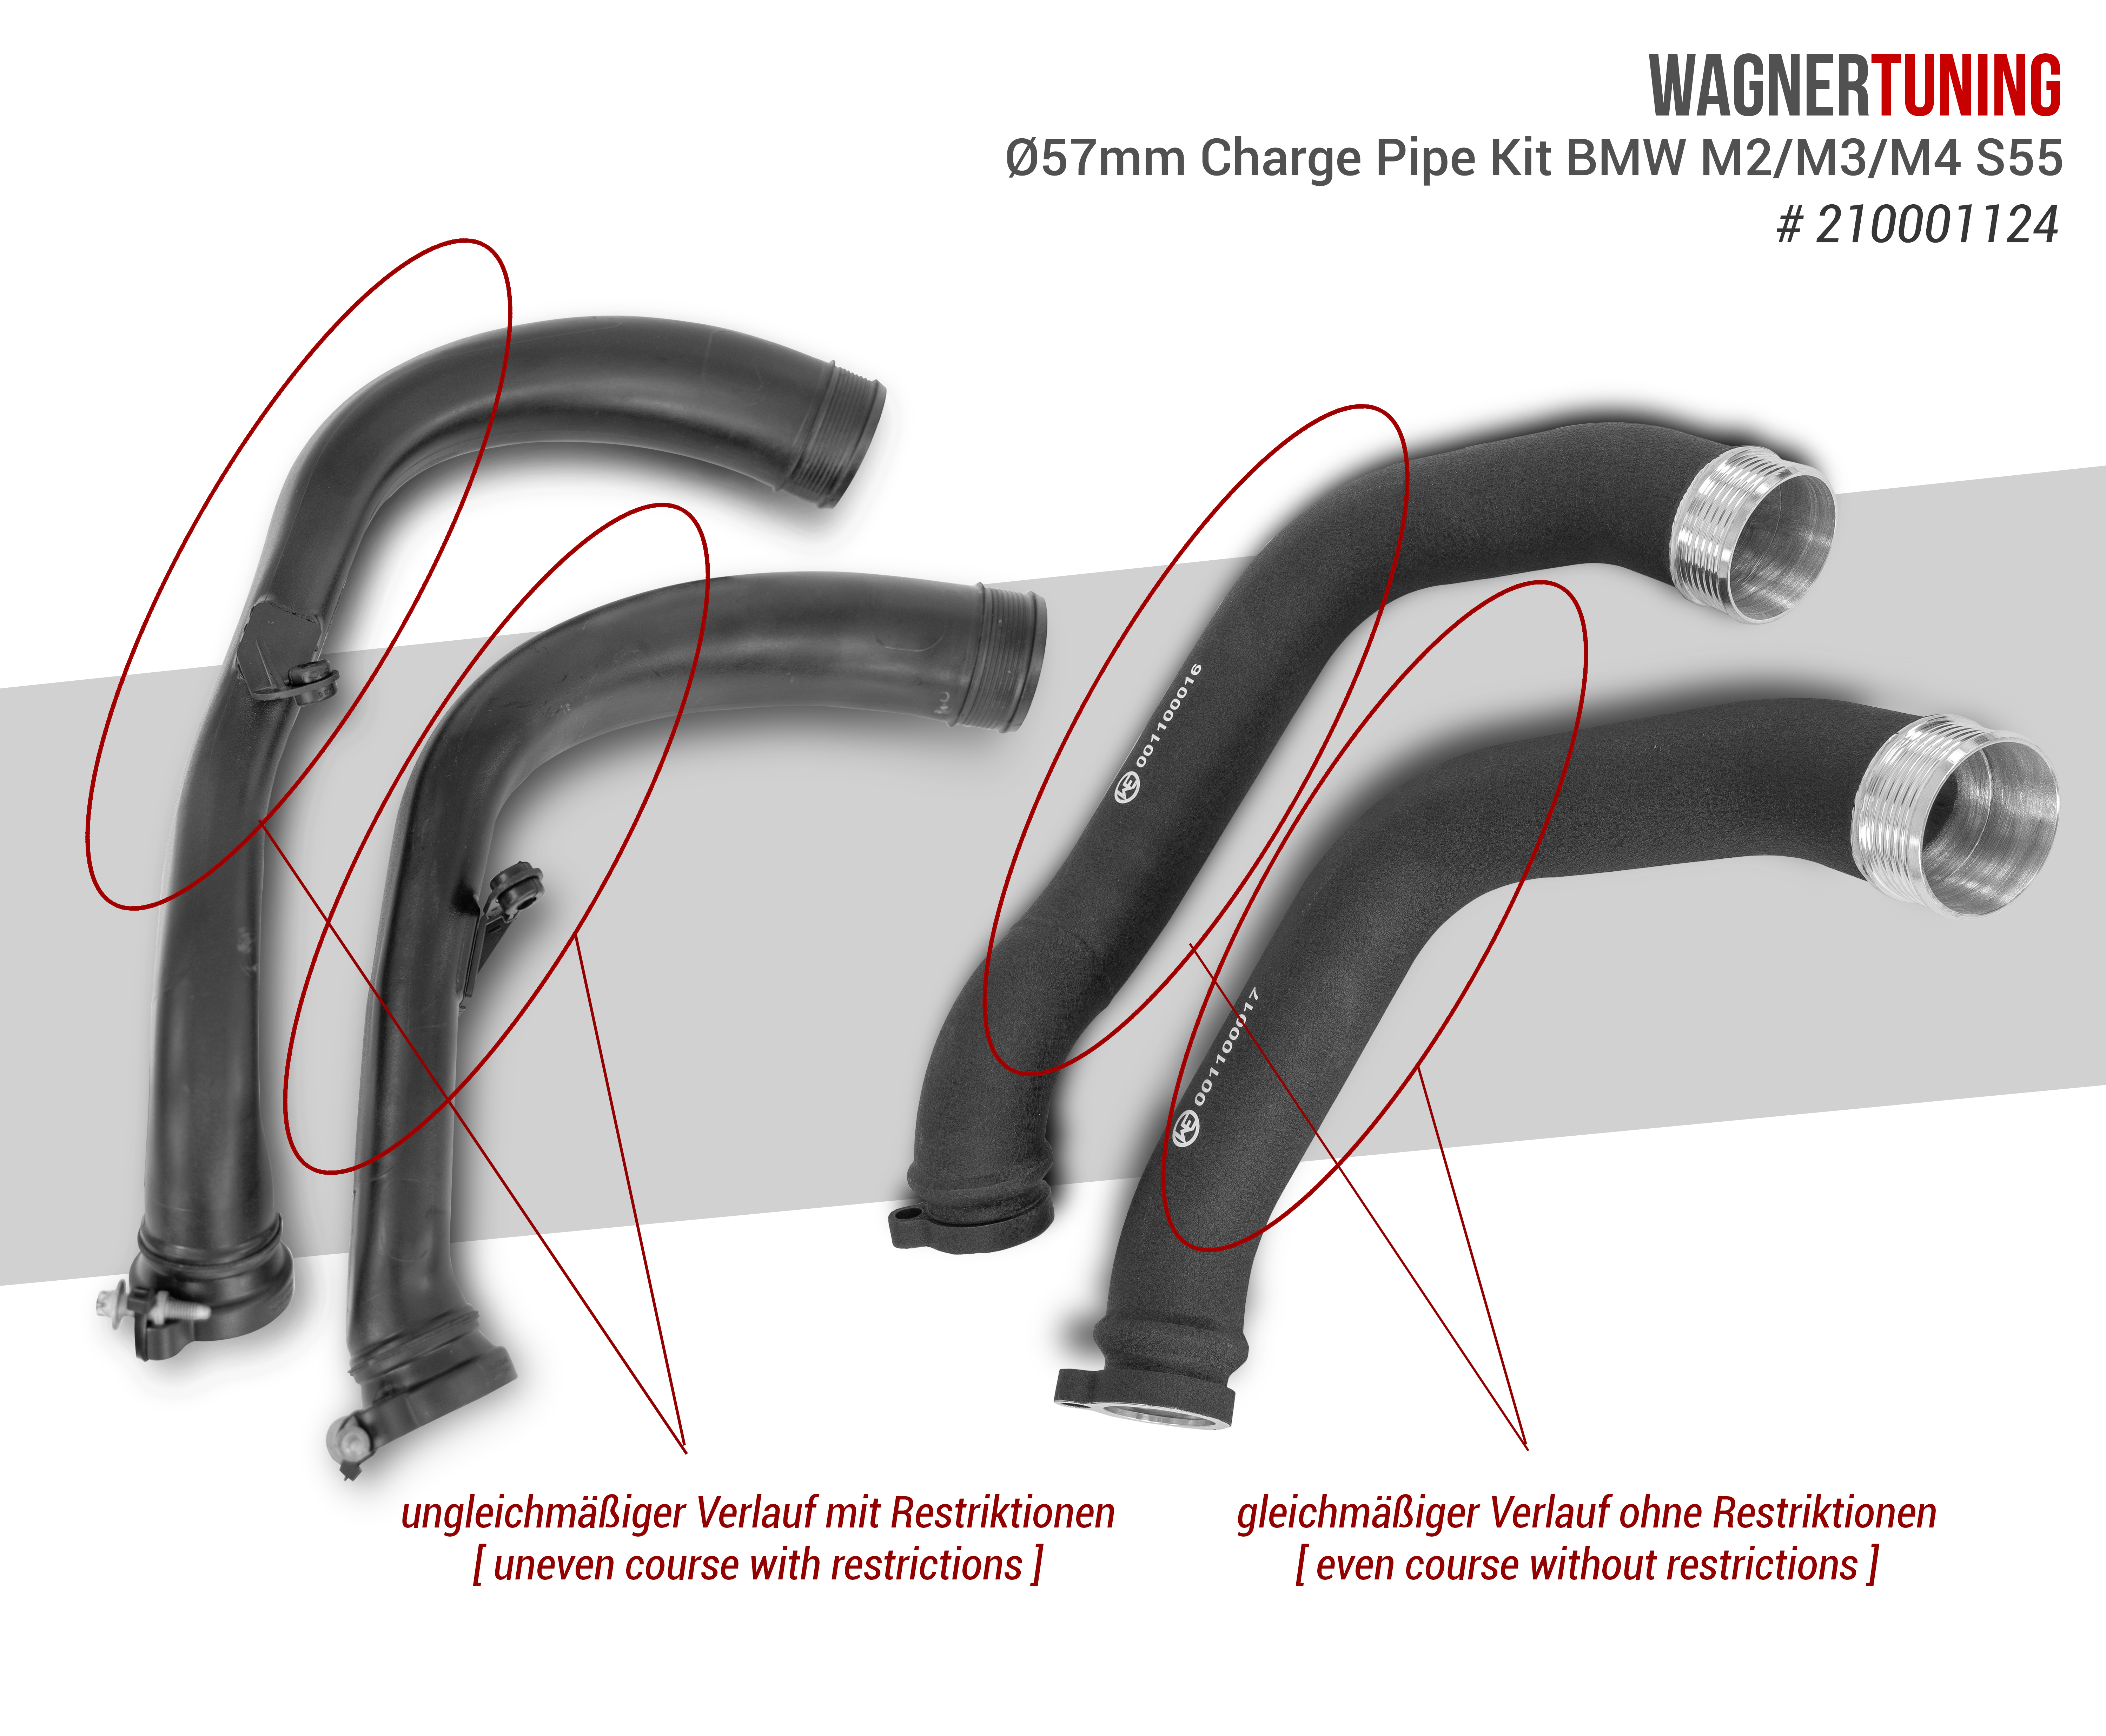 210001124-wagner-tuning-performance-charge-pipe-kit-bmw-s55-m2-competition-m3-m4.jpg